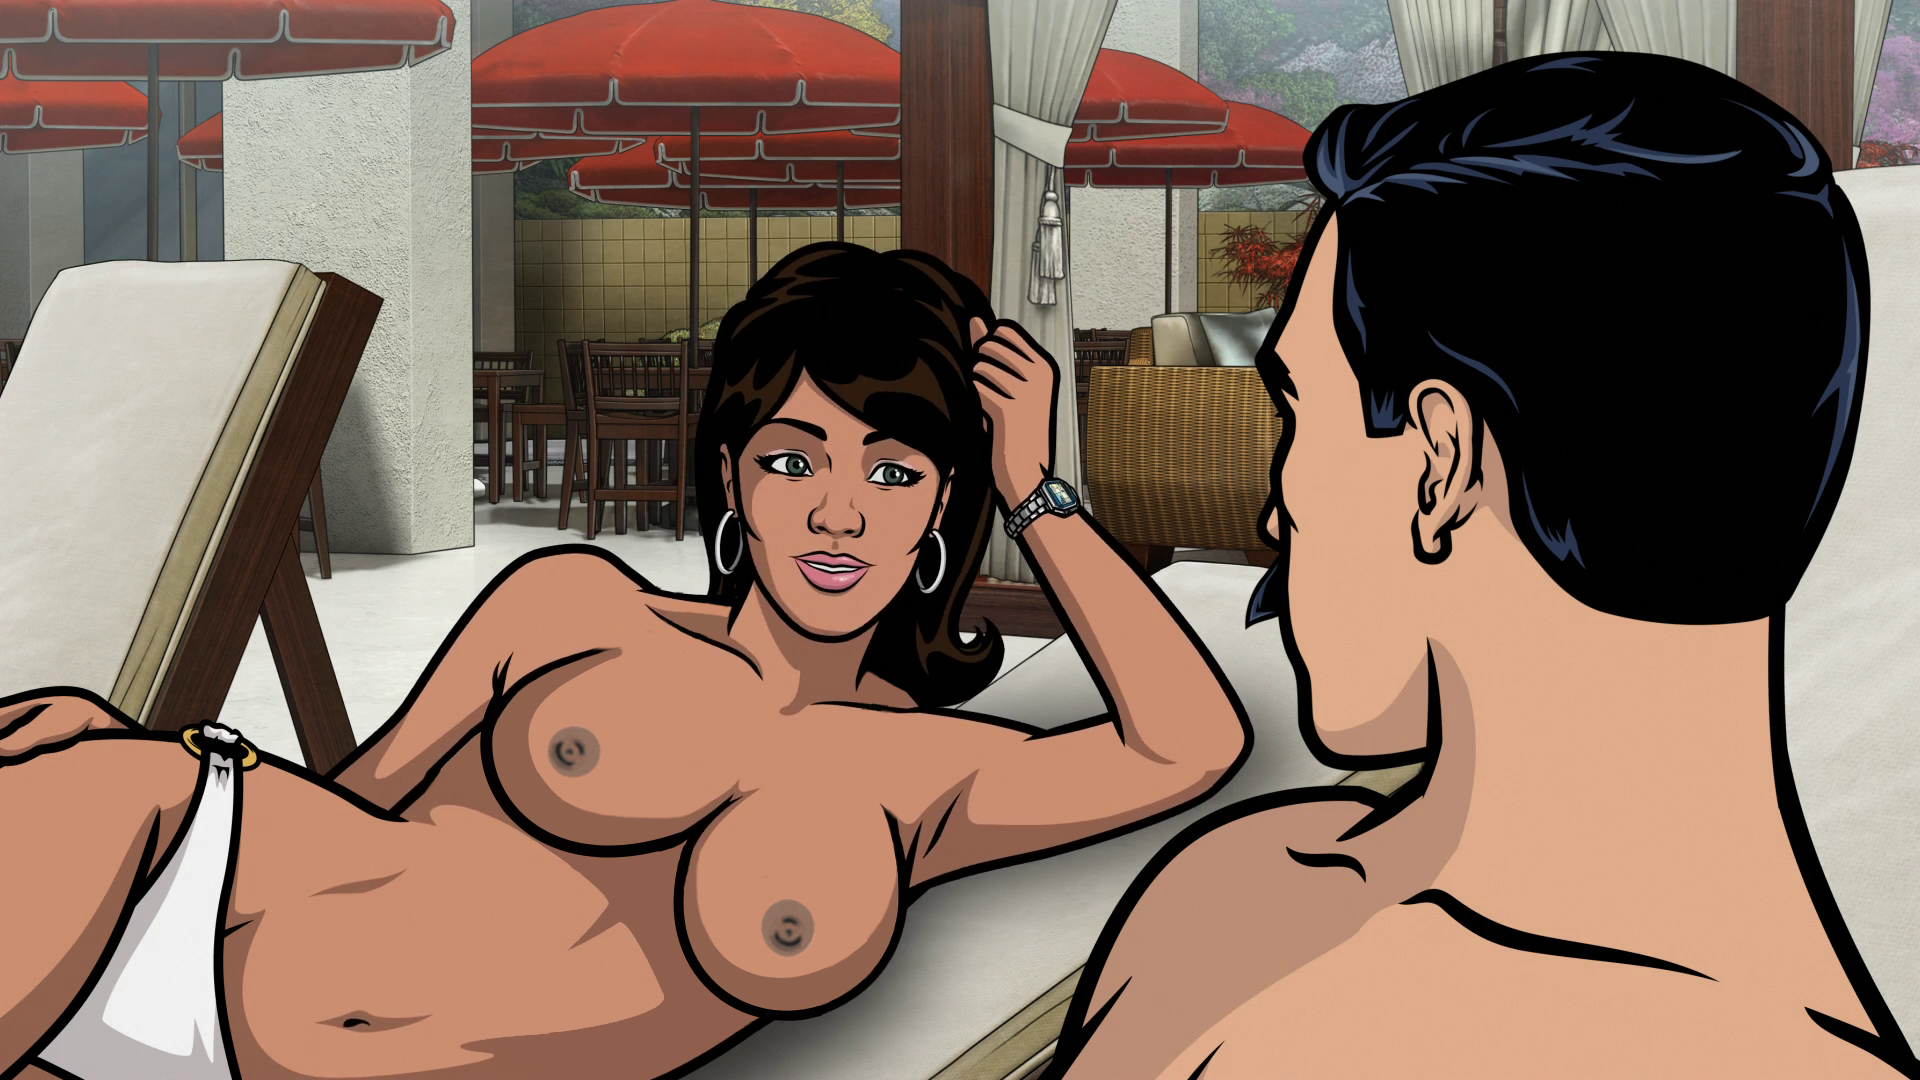 Hot pam from archer naked nackt thumbs